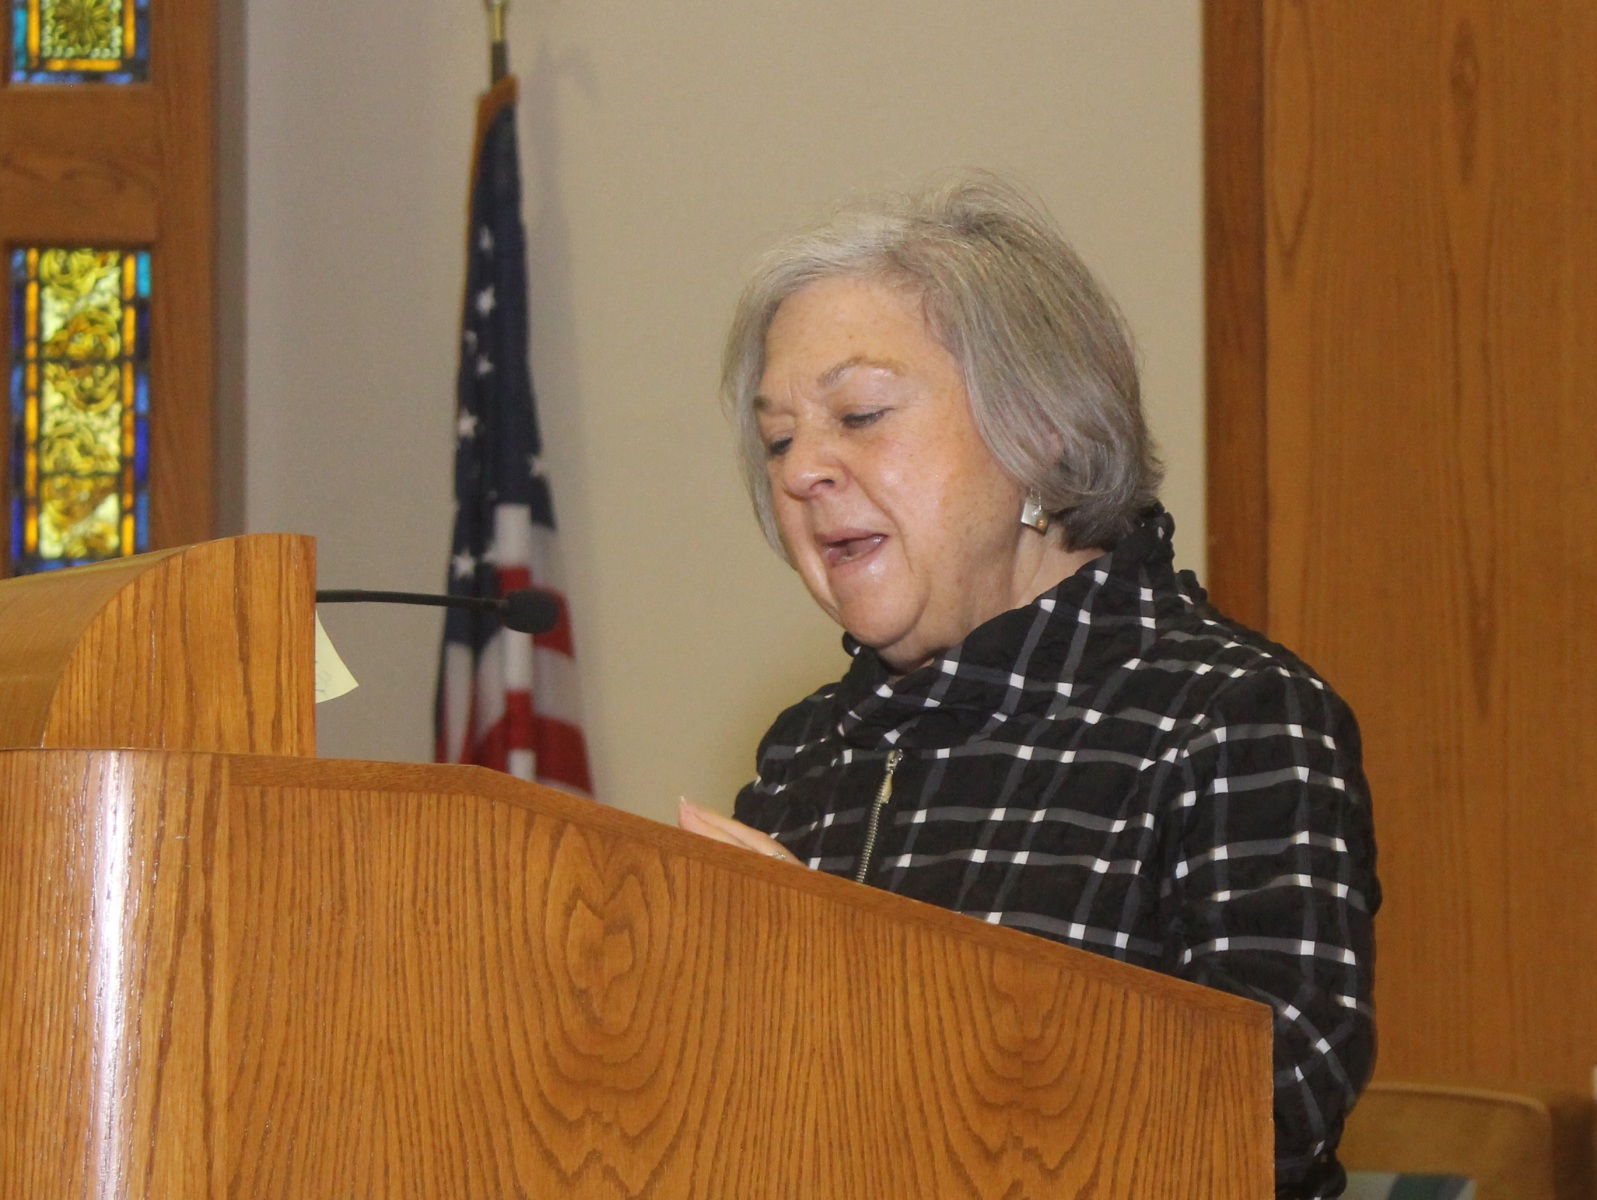 Gail Adler served as chair of the tribute weekend